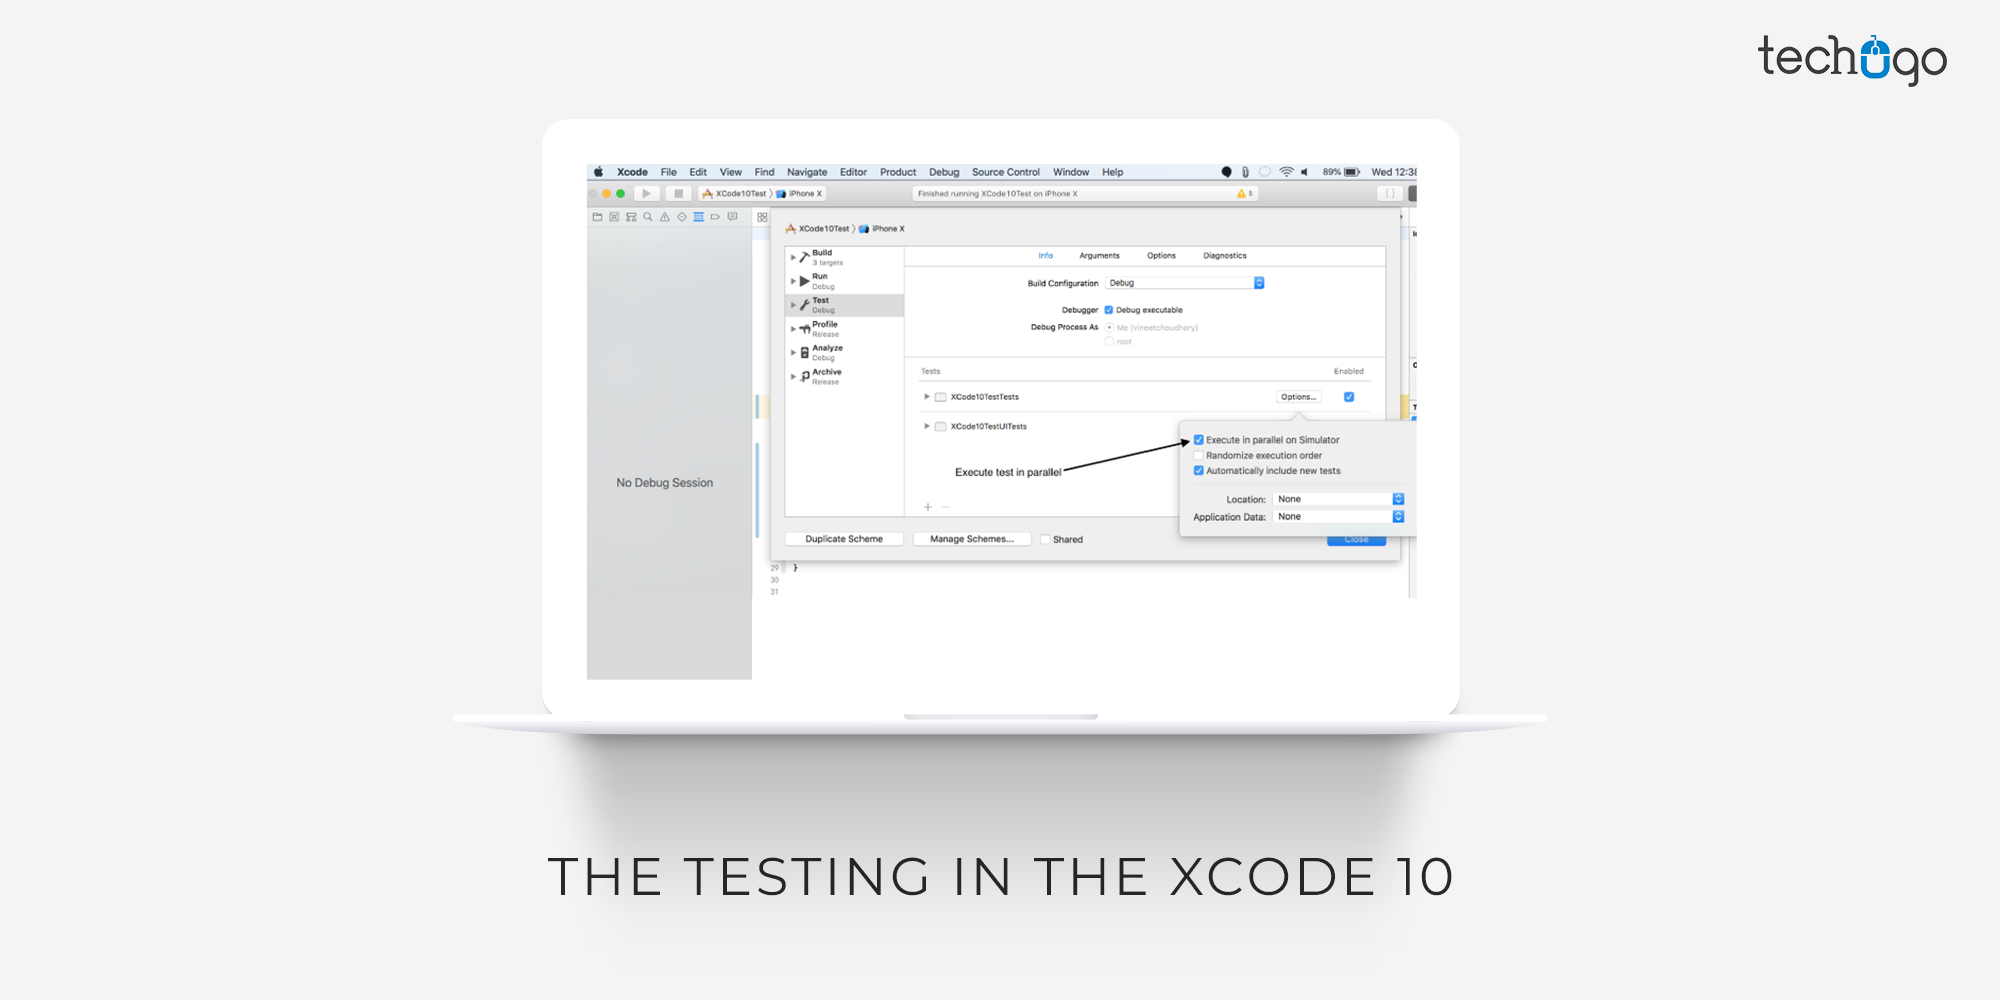 The Testing In The Xcode 10